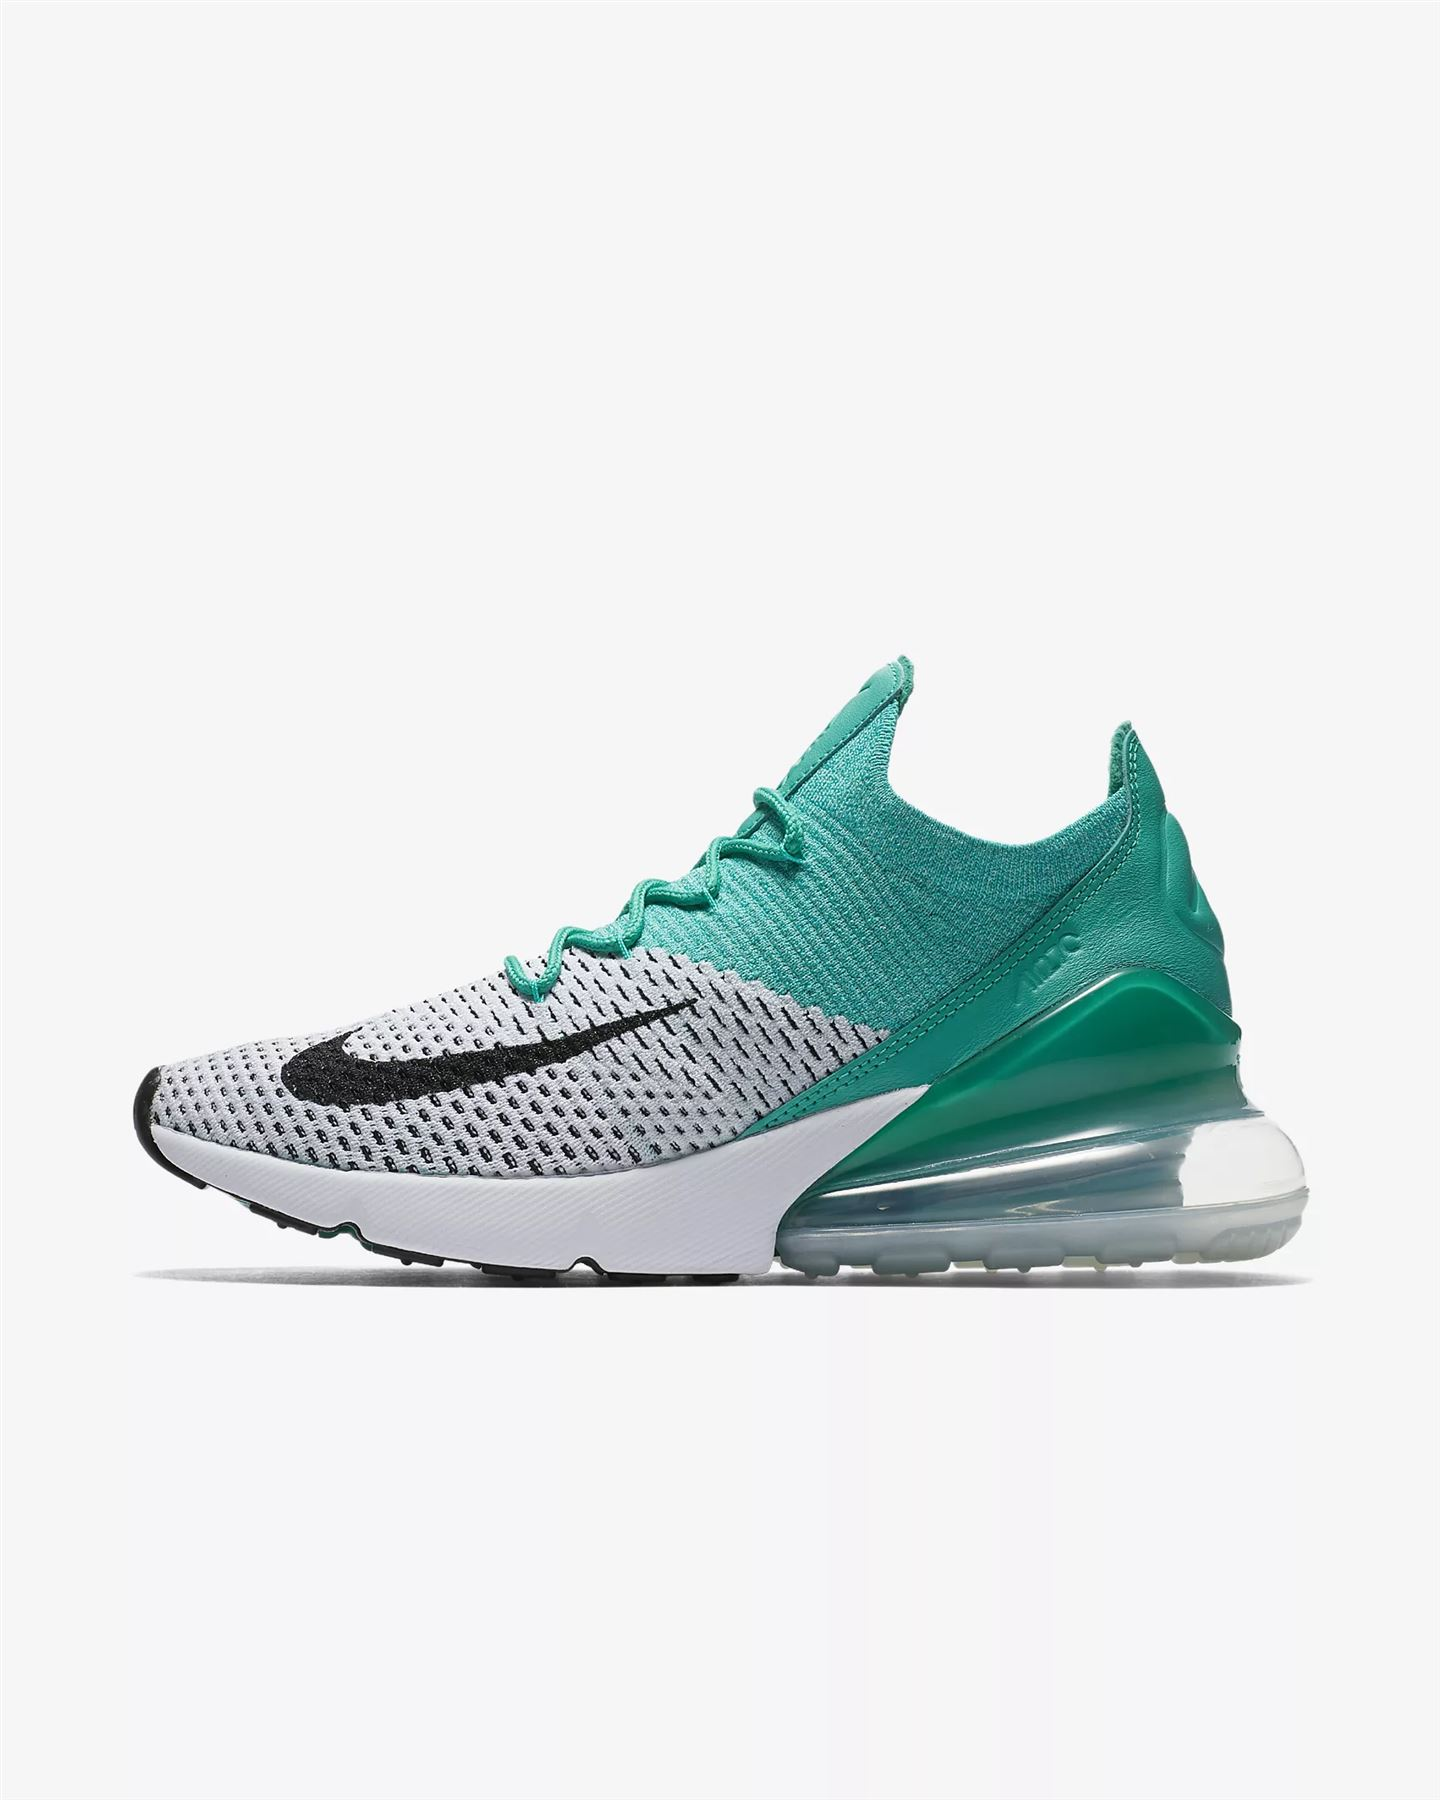 check out 701c8 05320 Nike Air Max 270 Flyknit AH6803 300 Women s Emerald UK 3.5-6